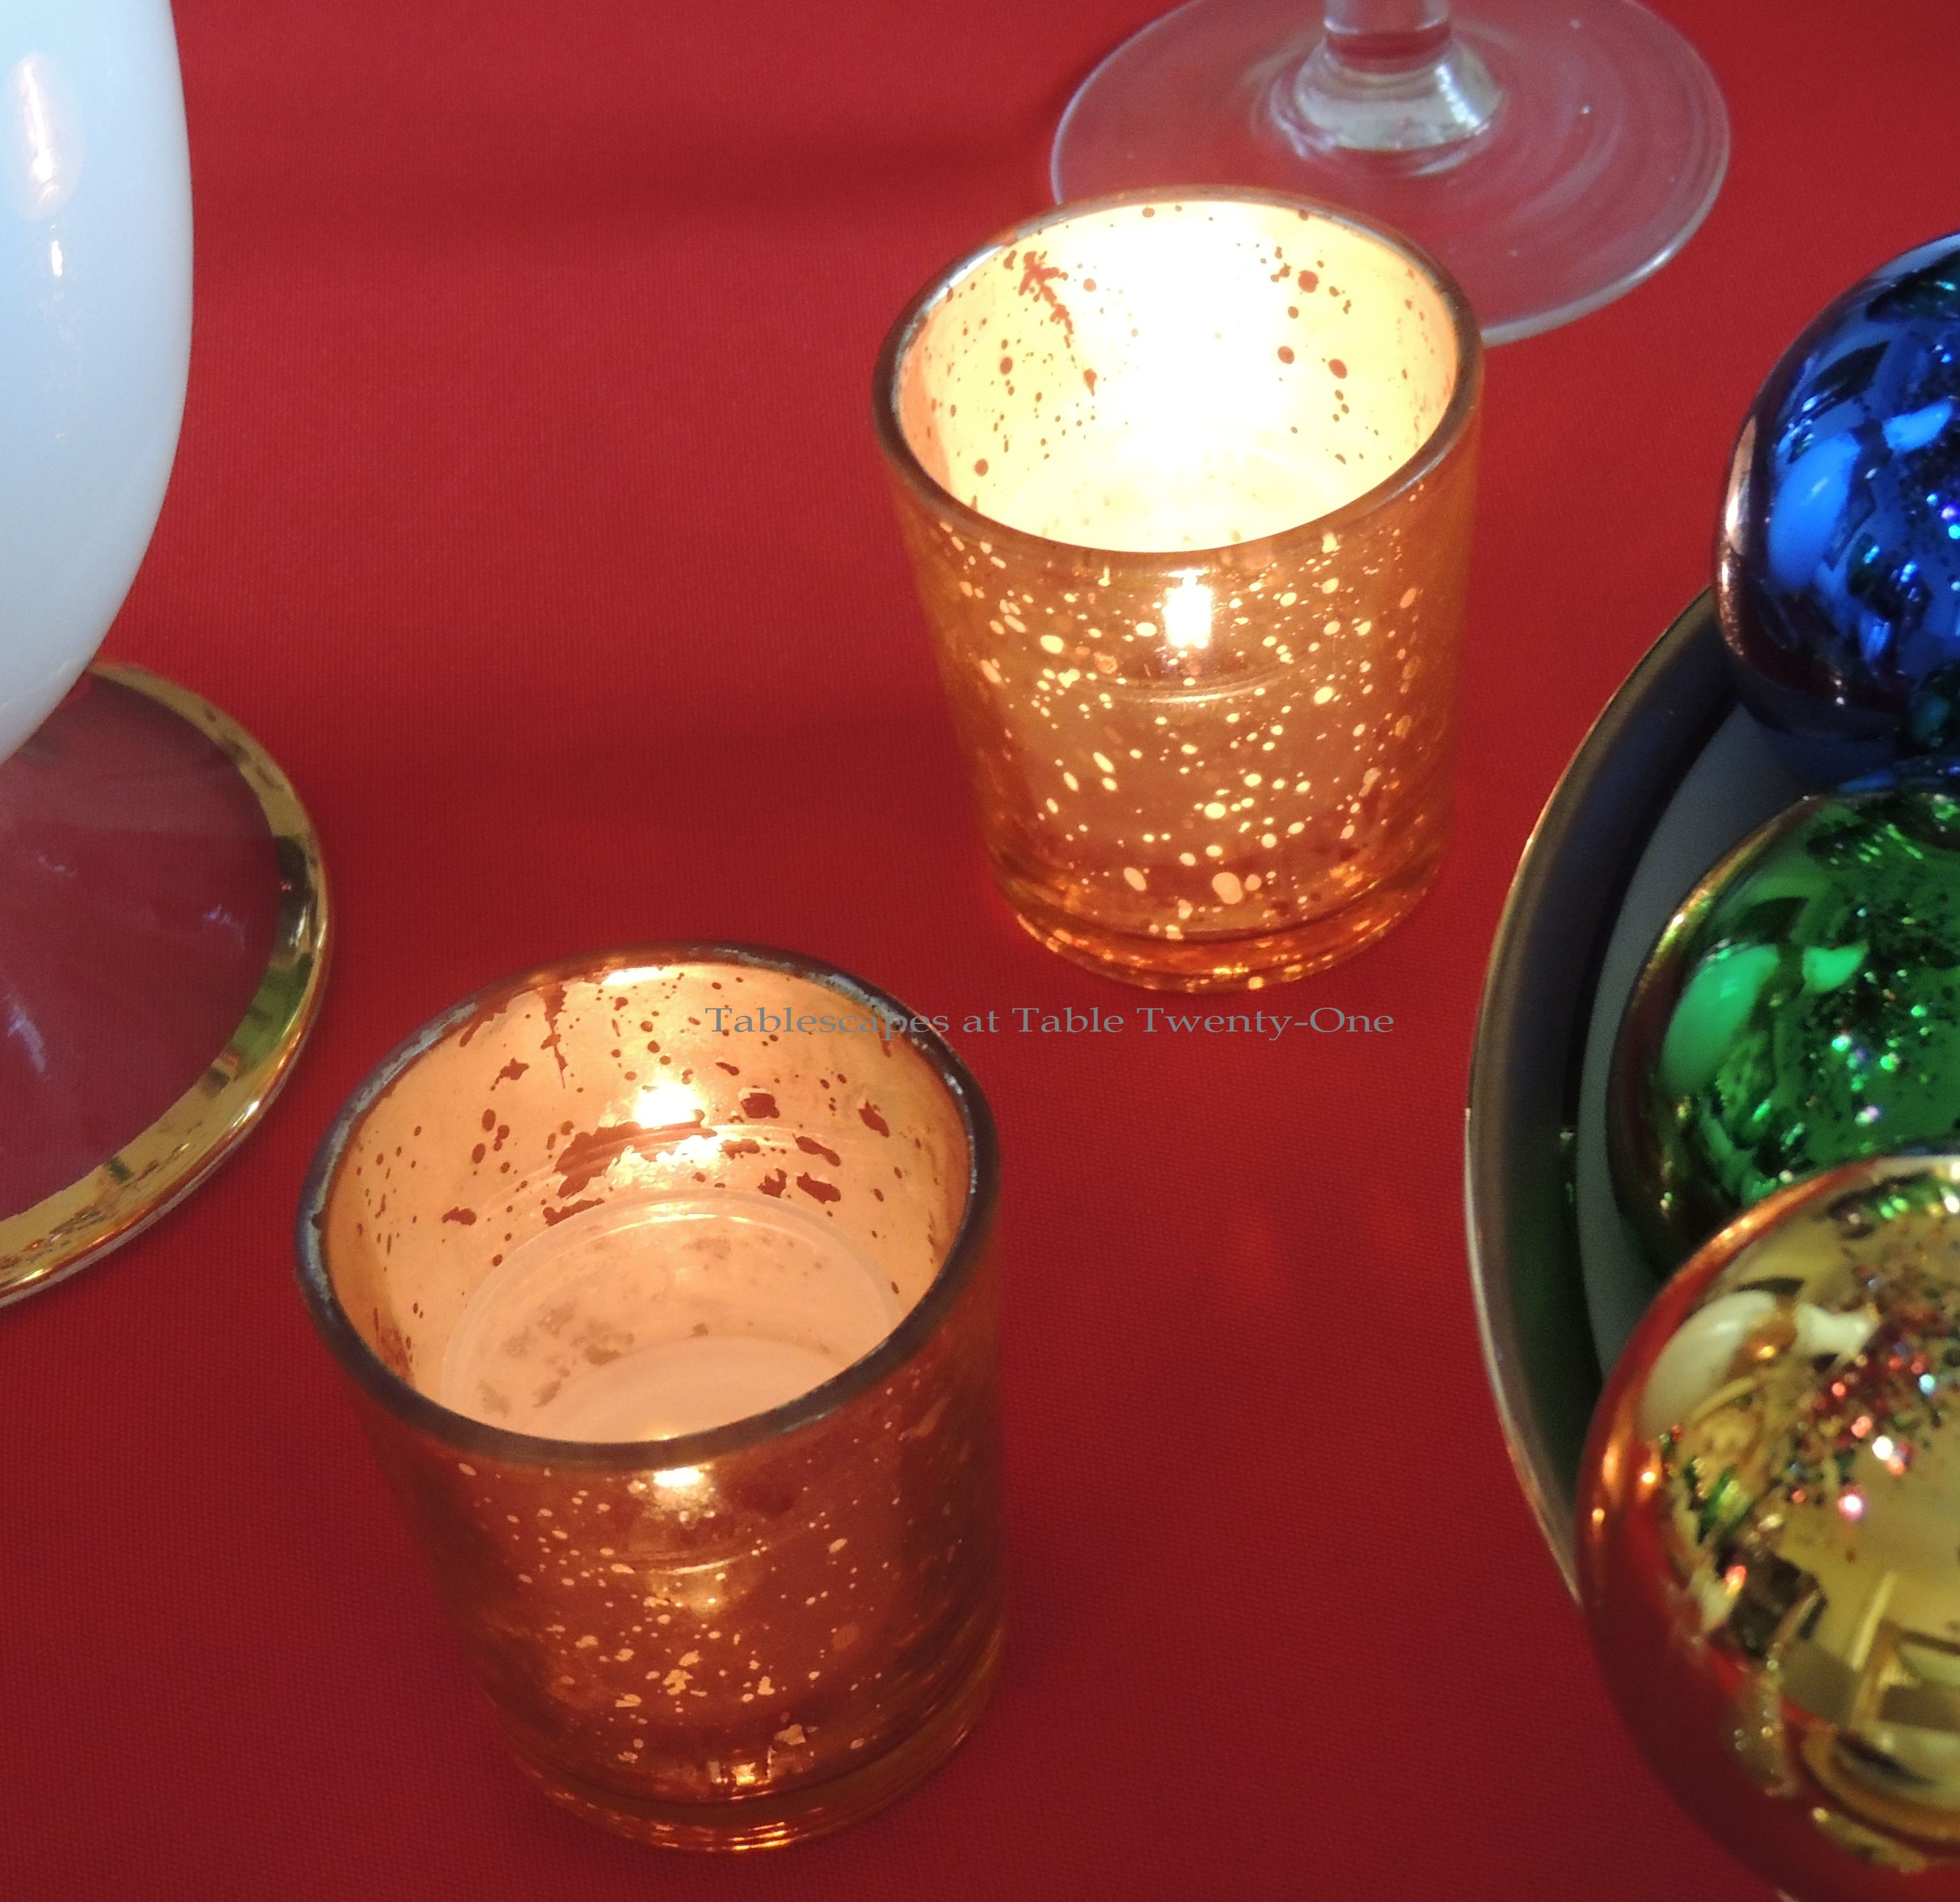 Tablescapes at Table Twenty-One, Merry & Bright Multi-Color Christmas: Gold mercury glass votive holders